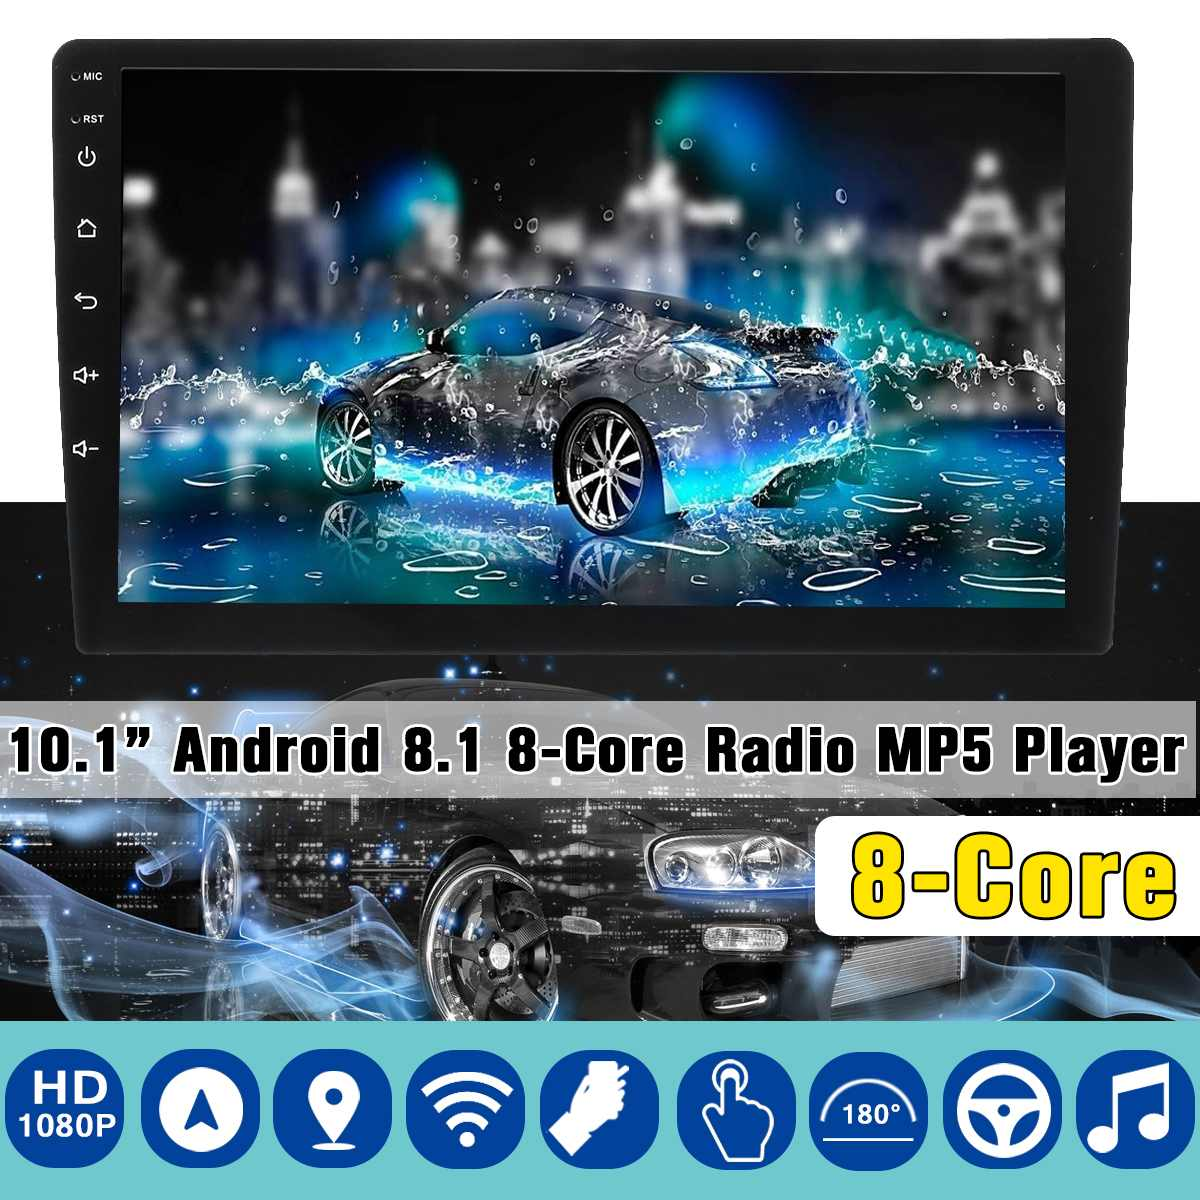 Car Multimedia Player 10.1 2G+32G for Android 8 Car Stereo 8 DIN bluetooth WIFI GPS Nav Quad Core Radio Video MP5 UniversalCar Multimedia Player 10.1 2G+32G for Android 8 Car Stereo 8 DIN bluetooth WIFI GPS Nav Quad Core Radio Video MP5 Universal